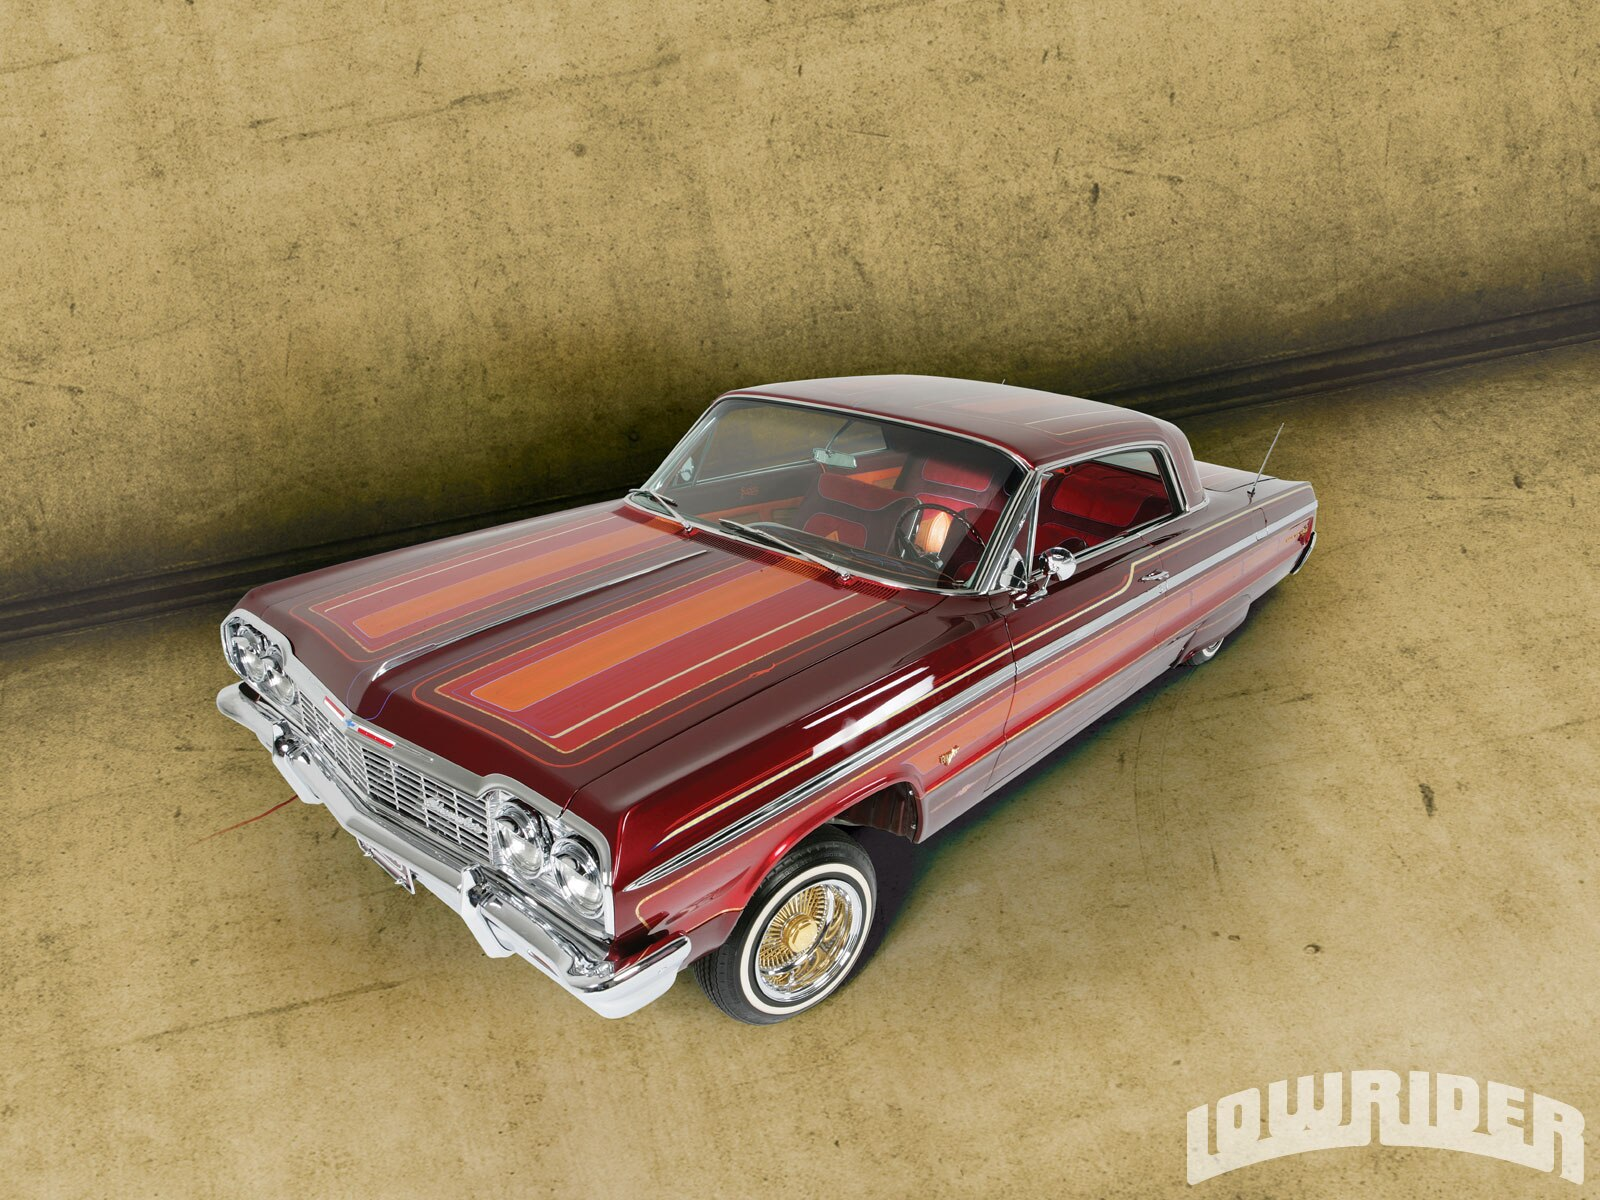 1102-lrmp-02-o-1964-chevrolet-impala-driver-side-front2